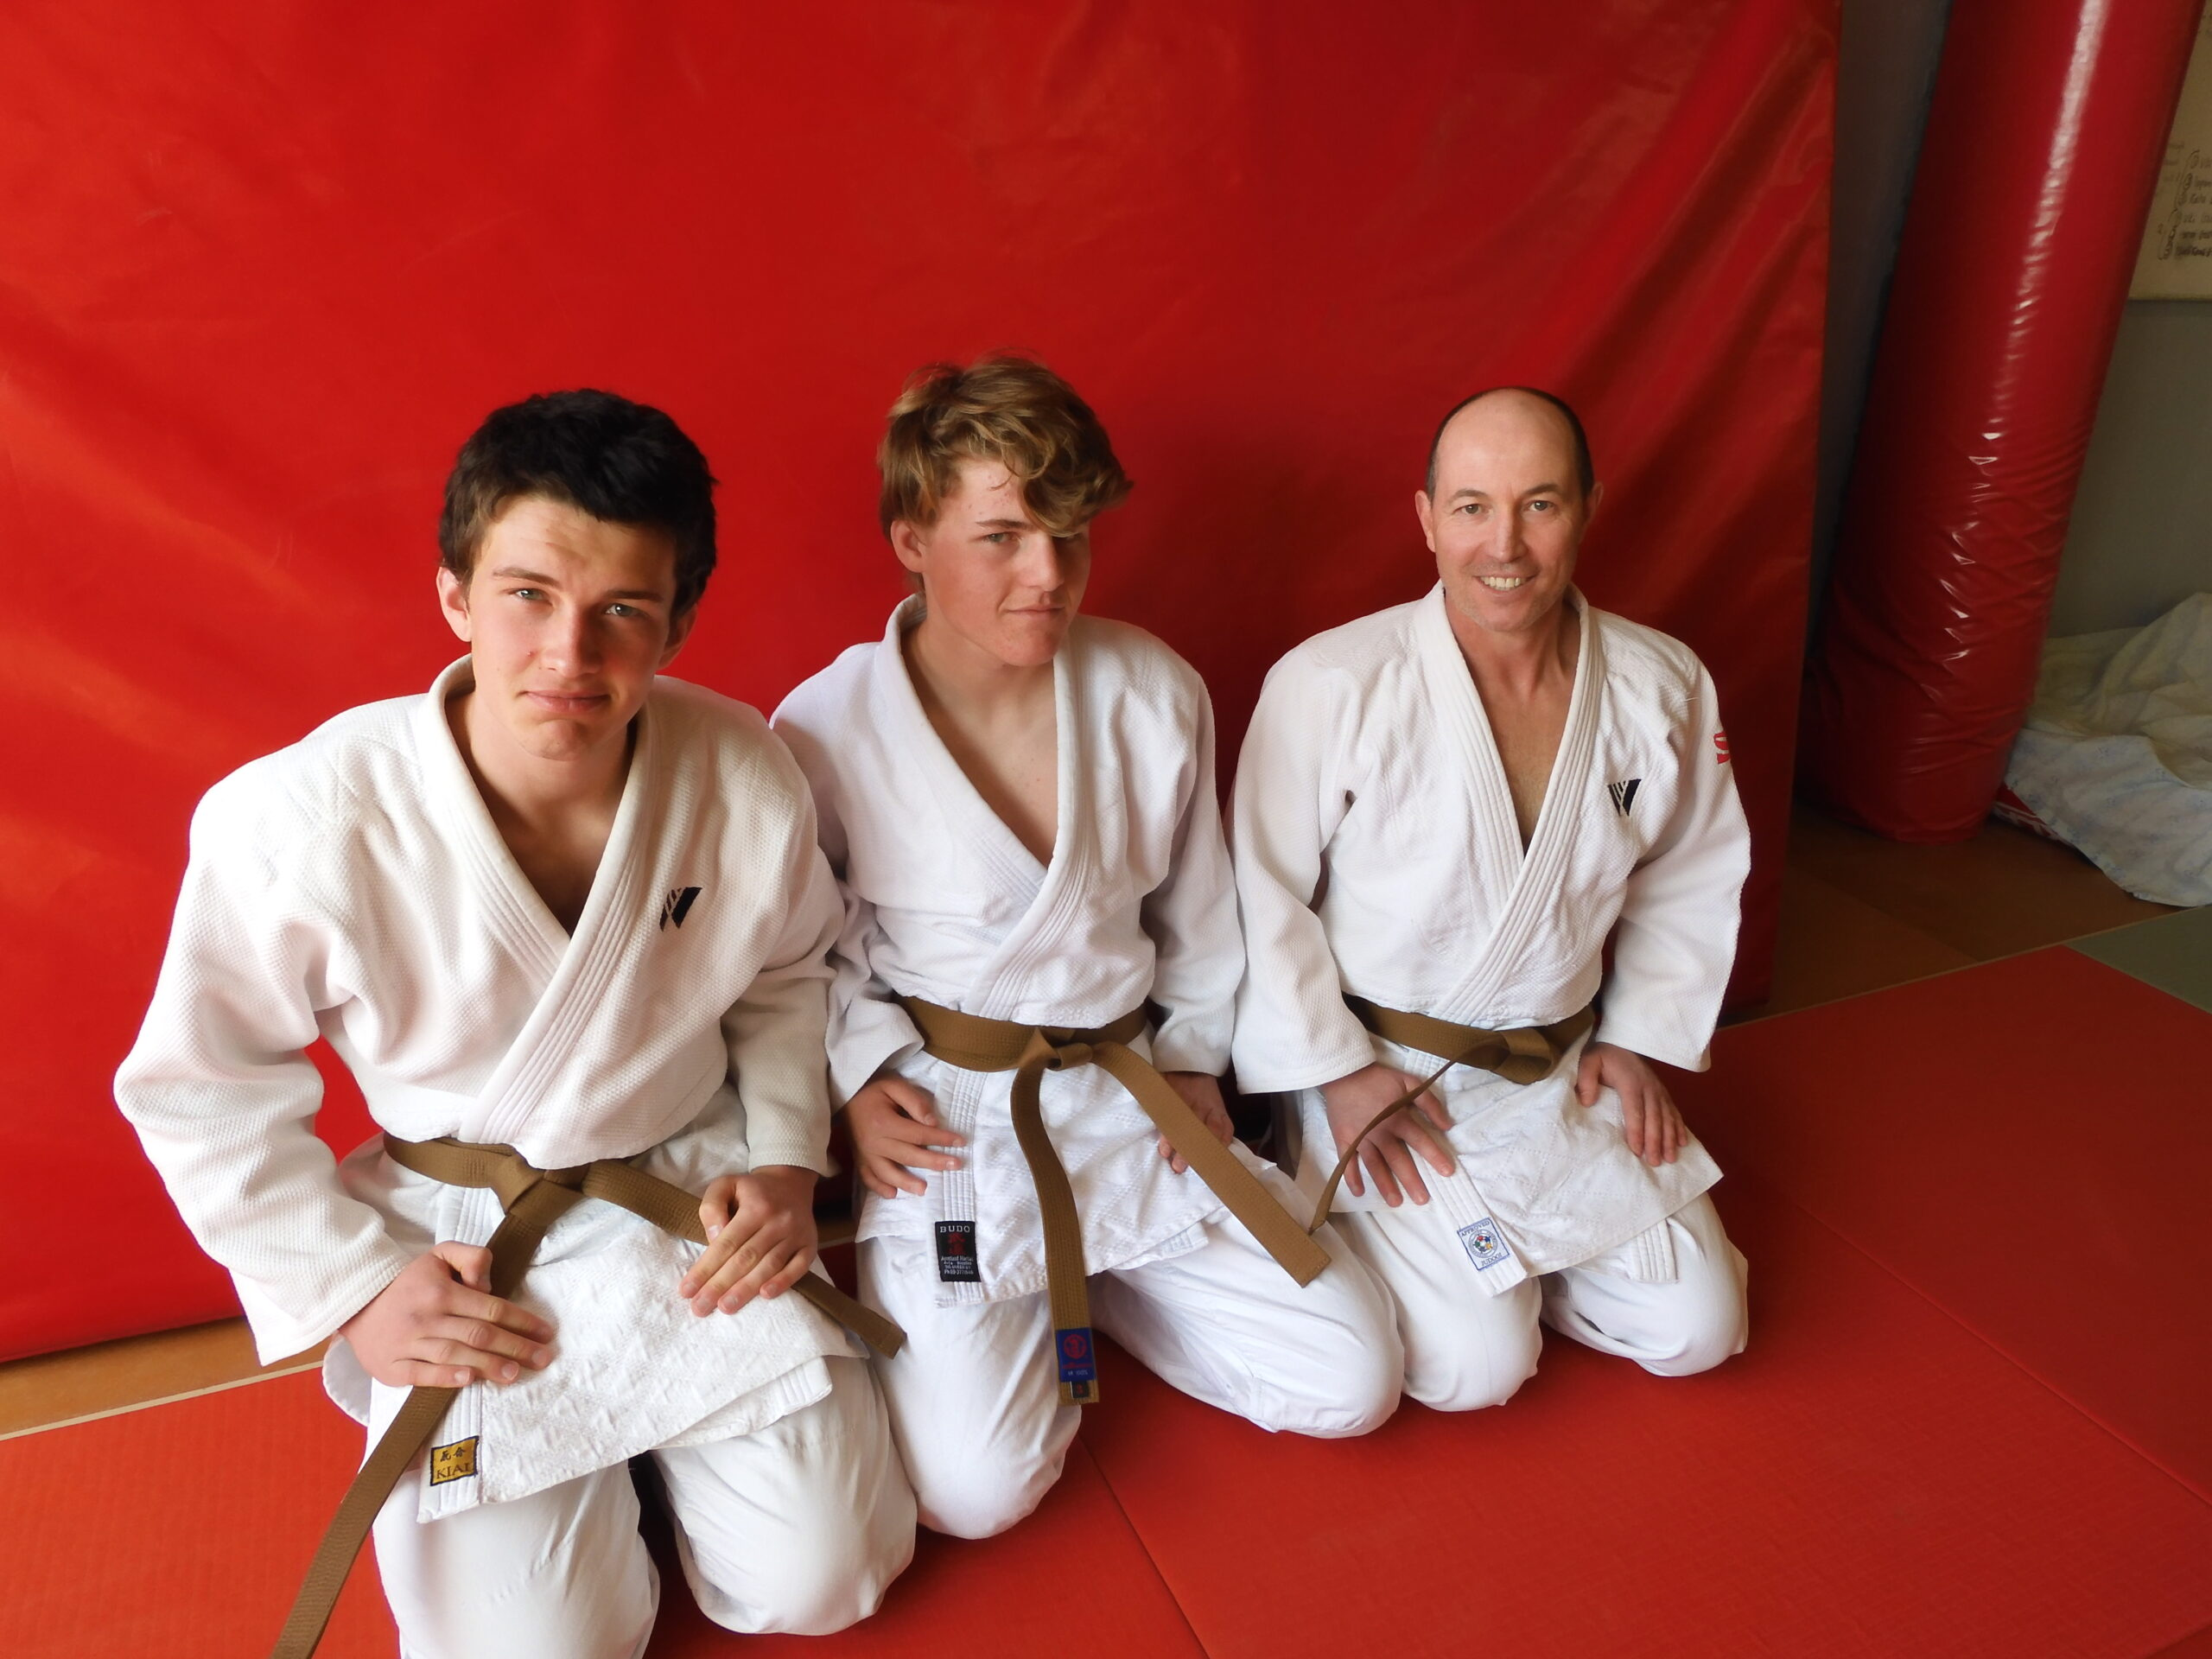 New Brown Belts at the Academy.